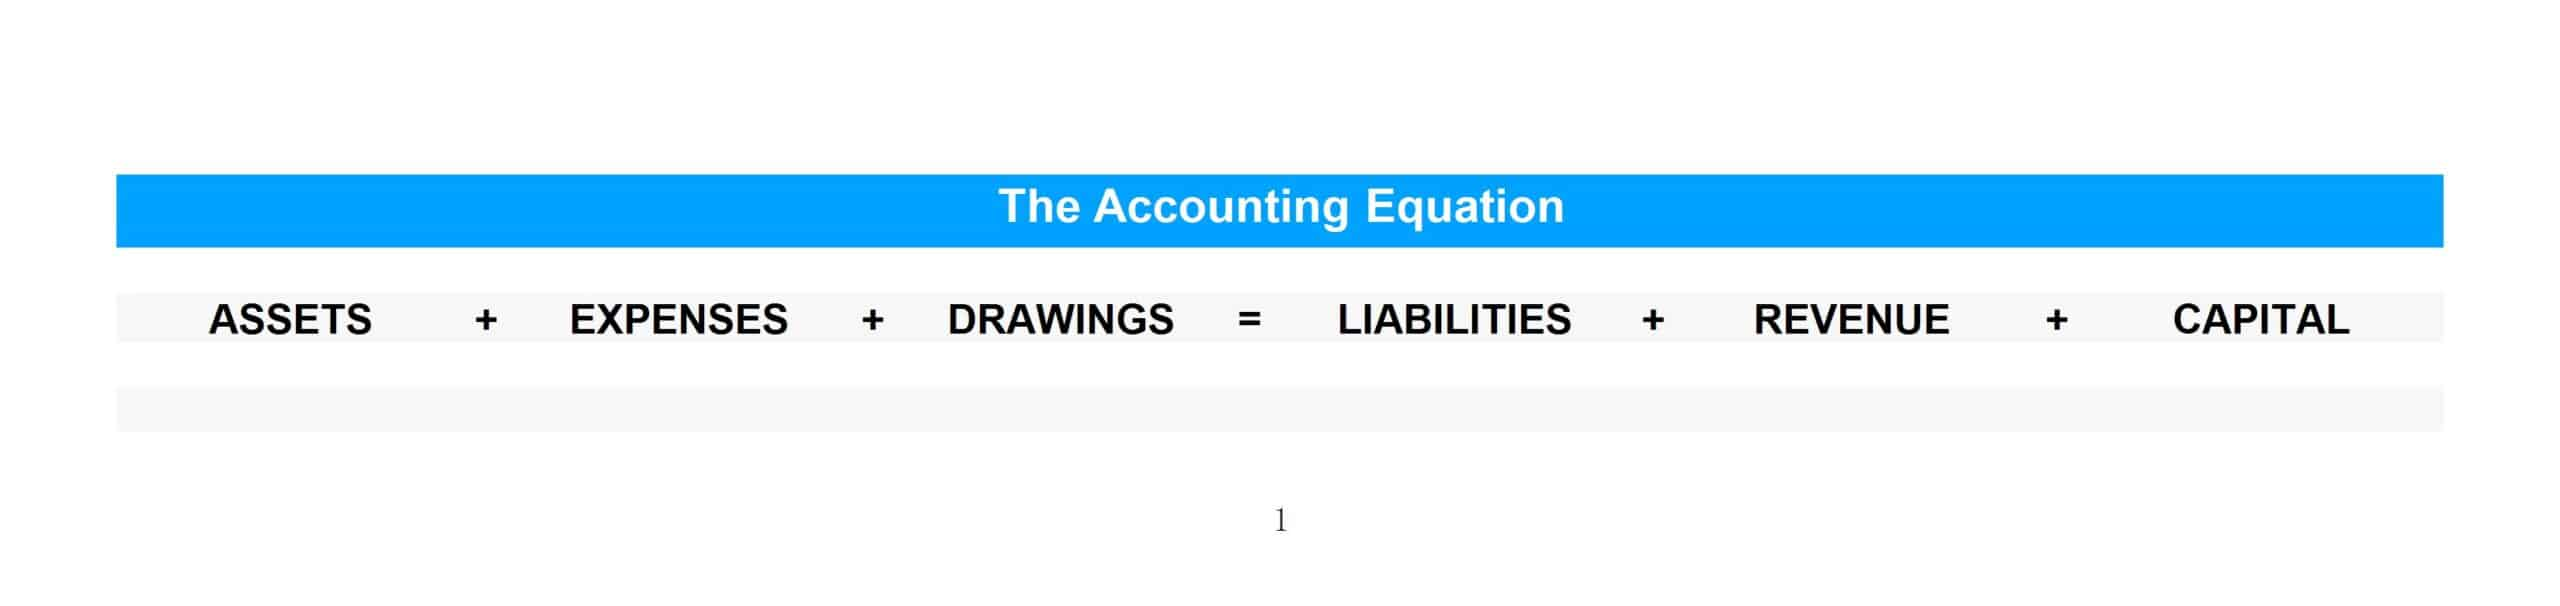 The expanded accounting equation is a summary of the two key financial statements; statement of financial performance and position.